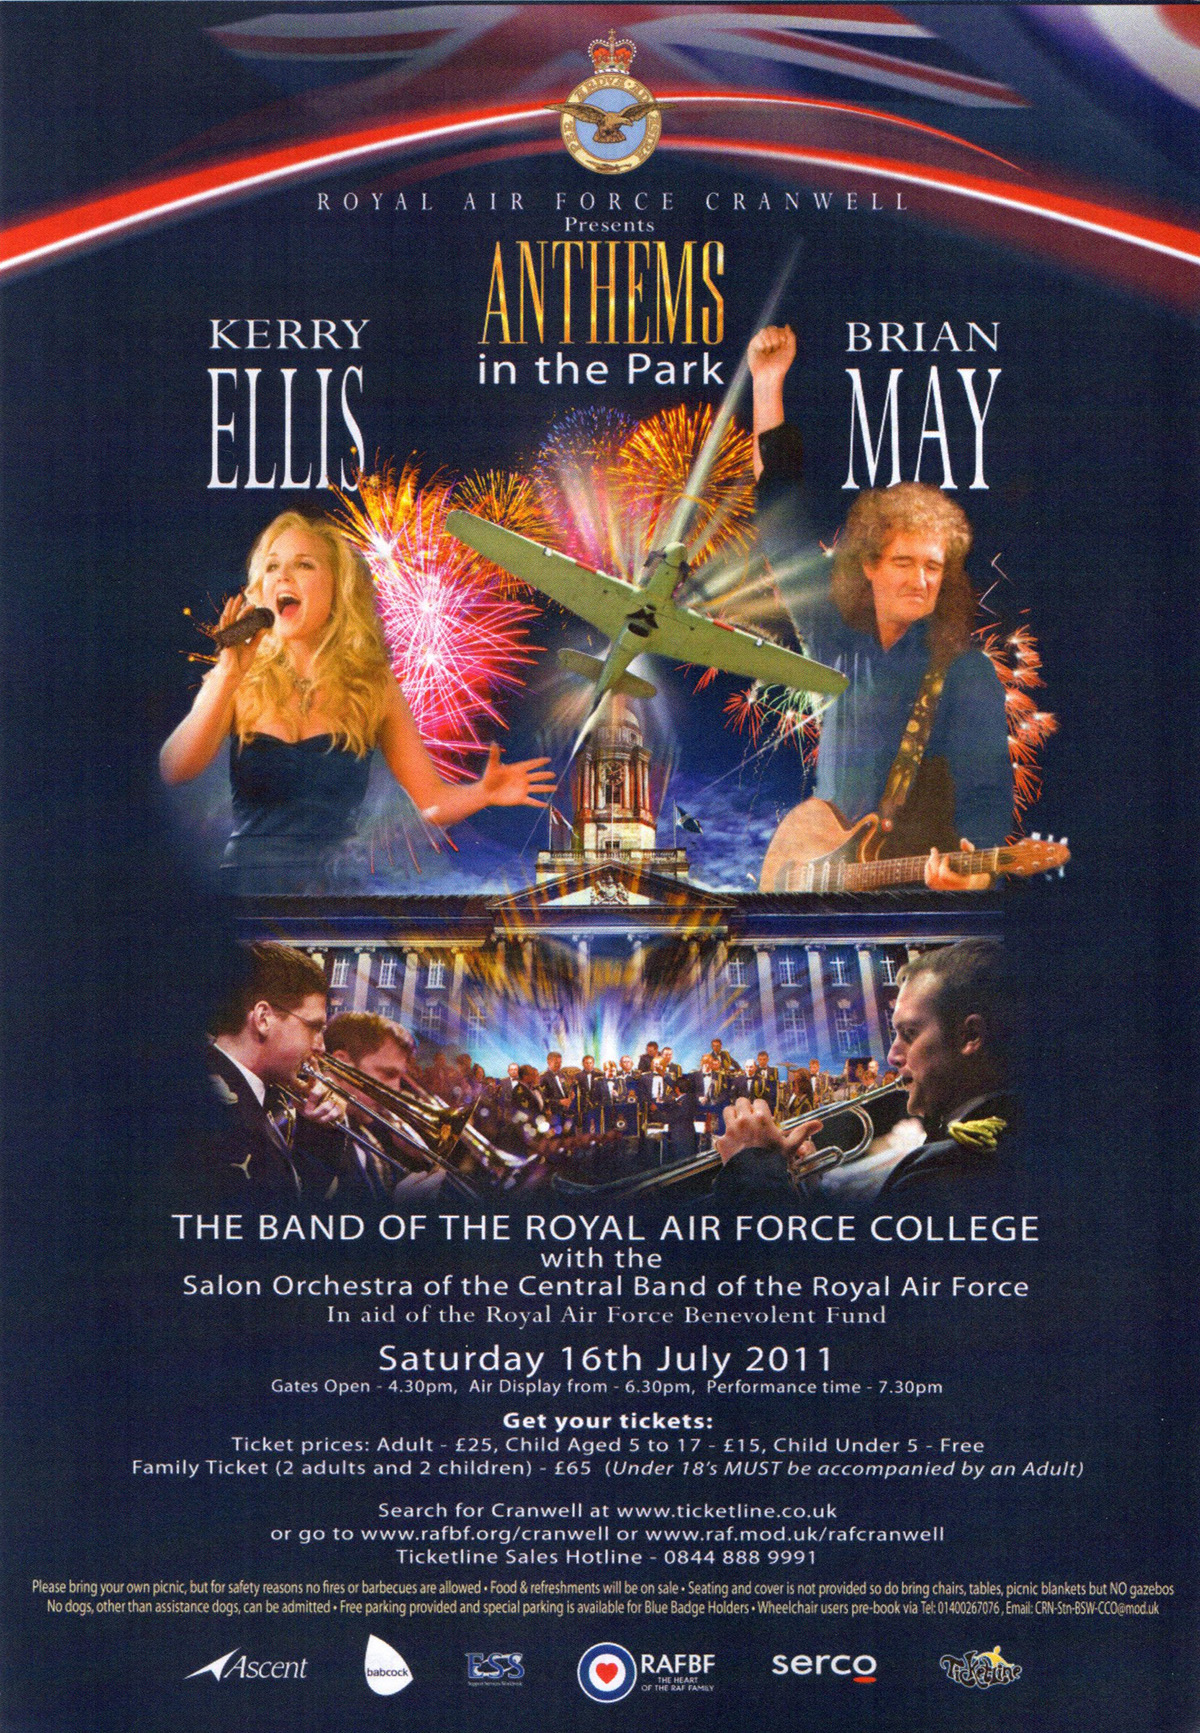 Brian May with Kerry Ellis at RAF Cranwell on 16.07.2011